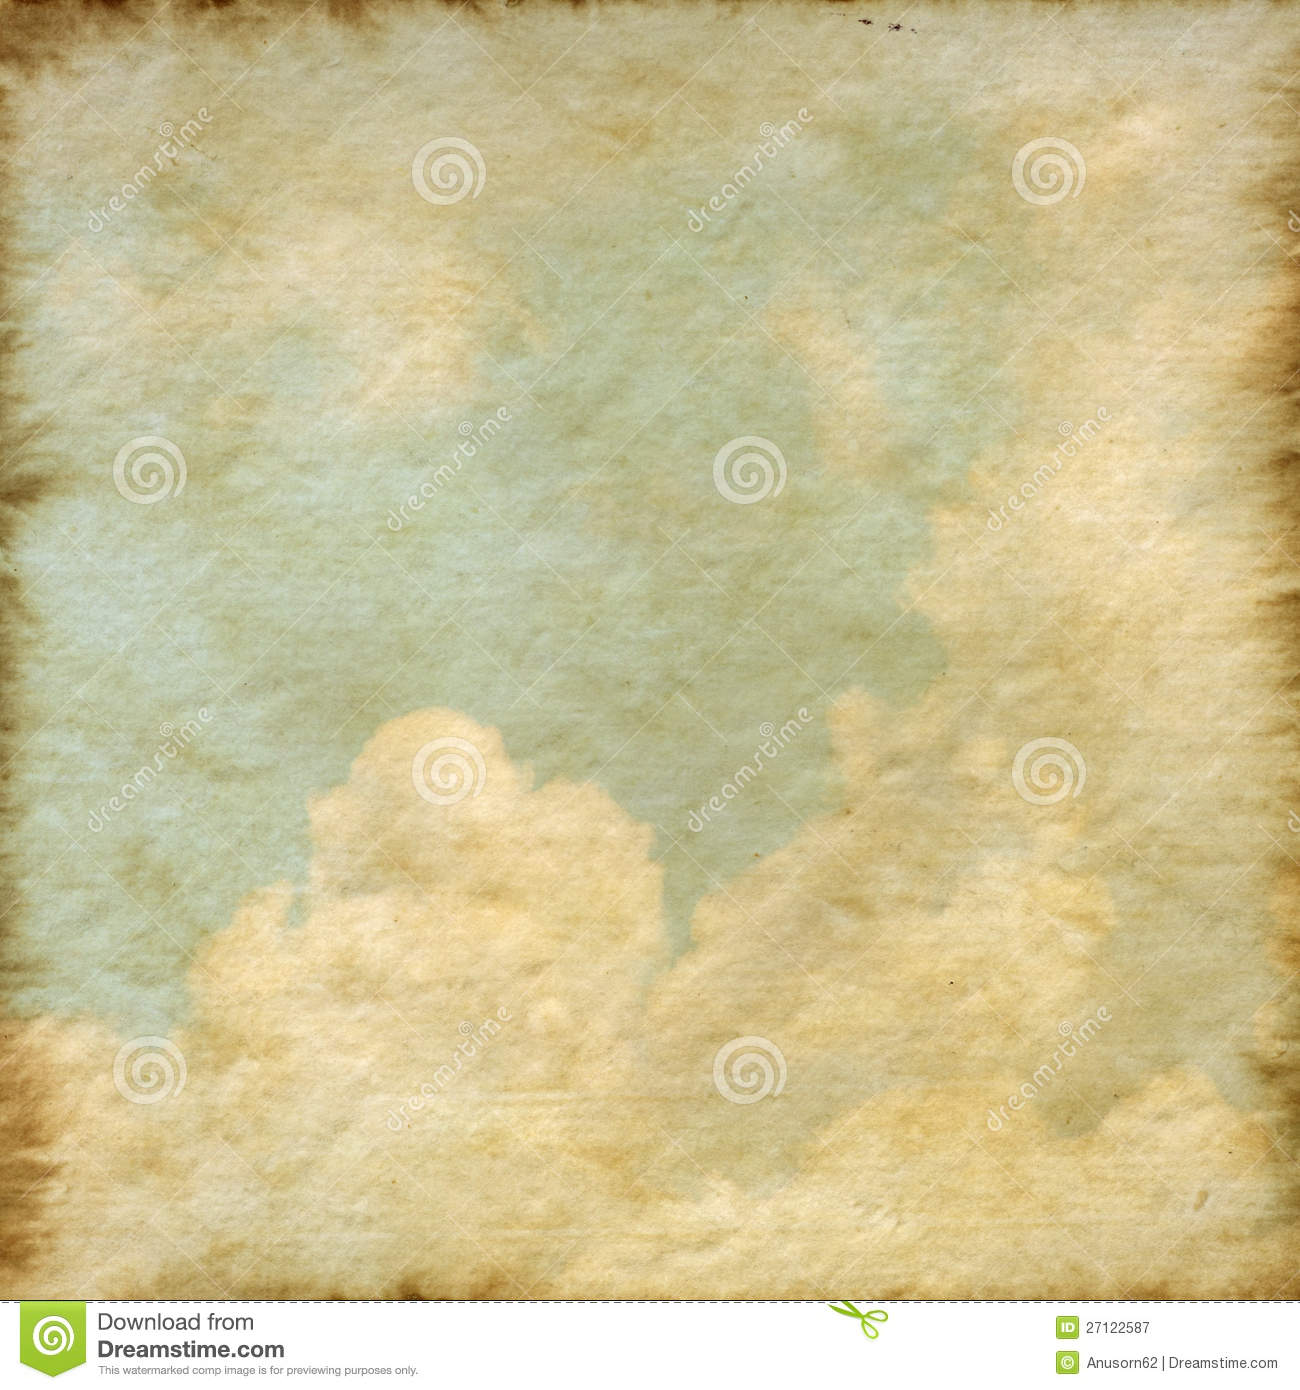 Old mulberry paper texture background royalty free stock for Texture background free download